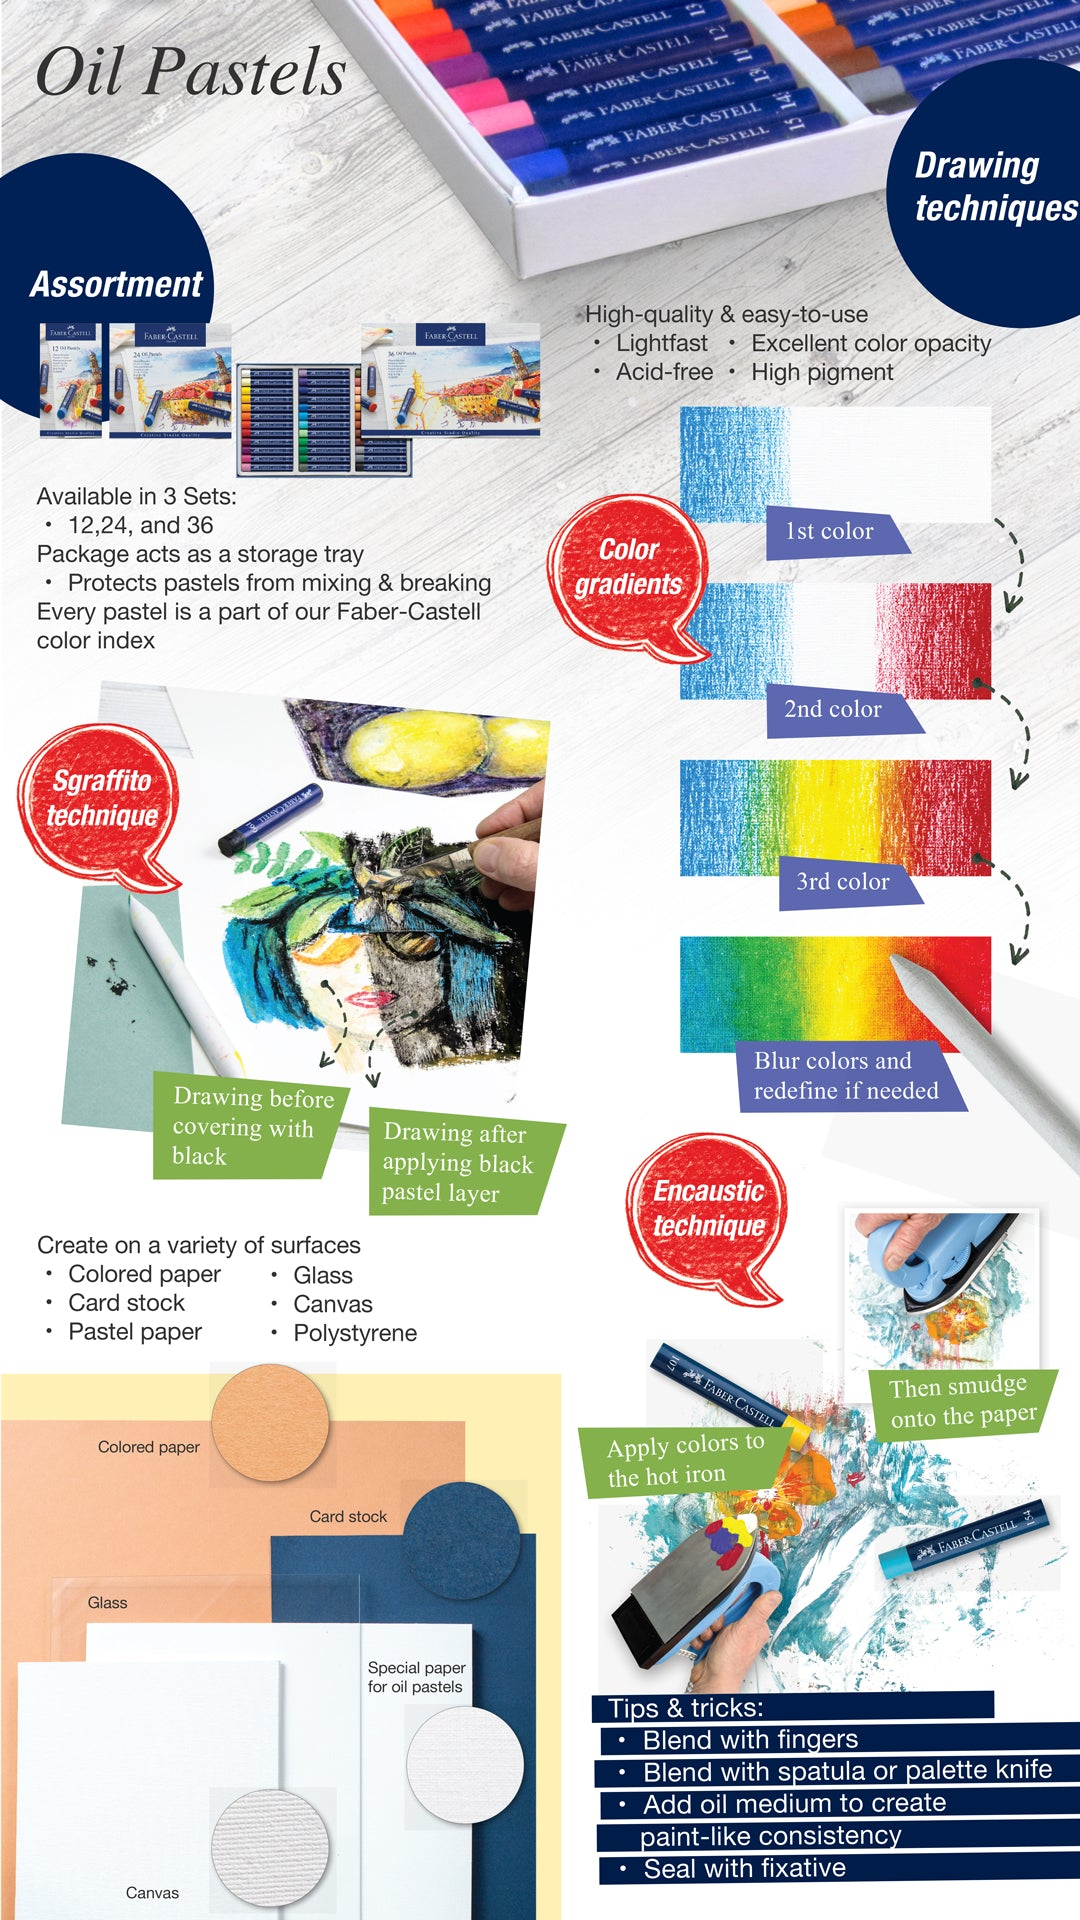 Oil Pastel Infographic